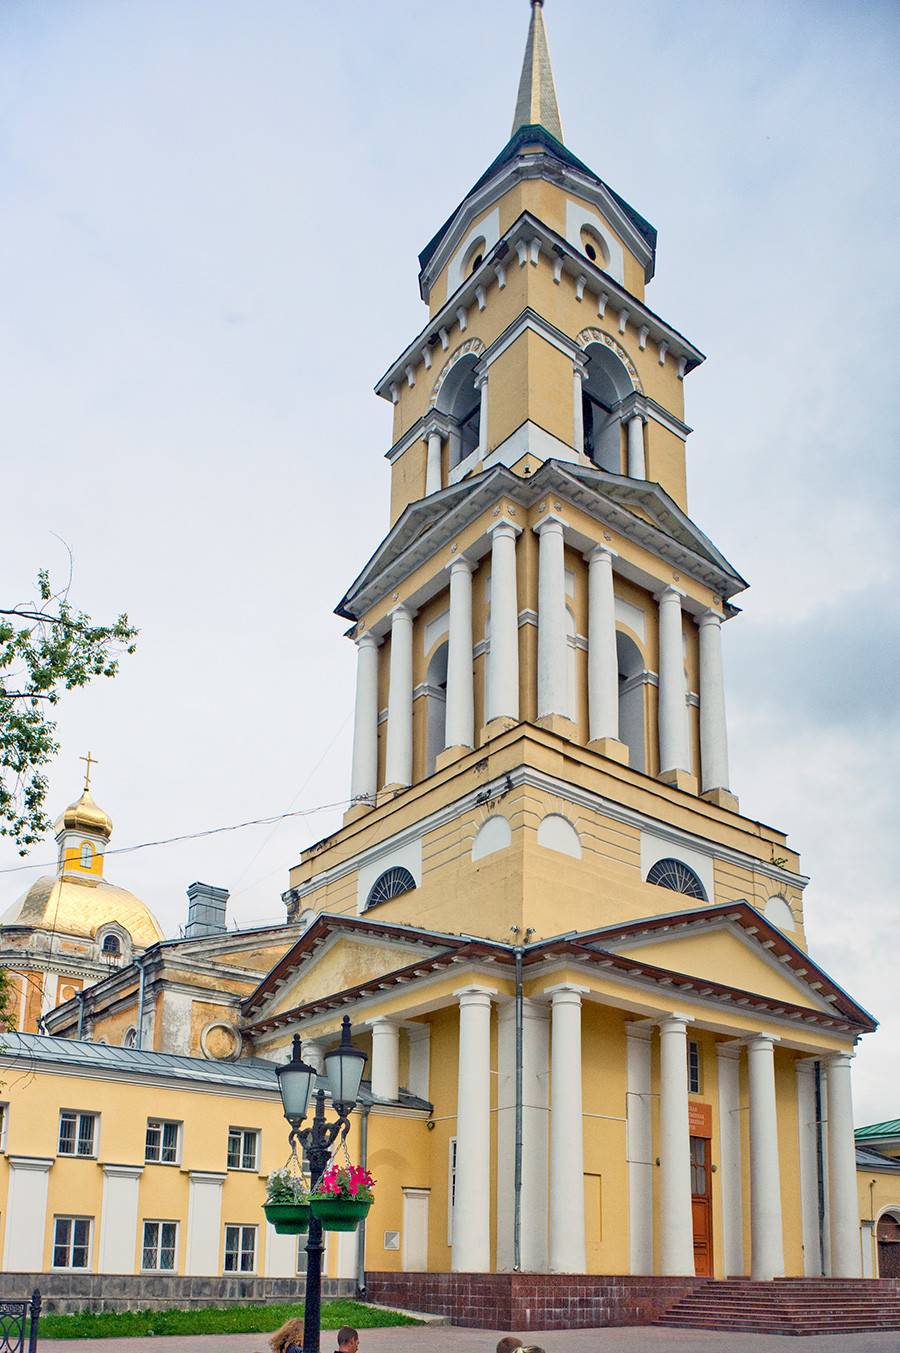 Bell tower of the Cathedral of the Transfiguration of the Savior. June 15, 2014